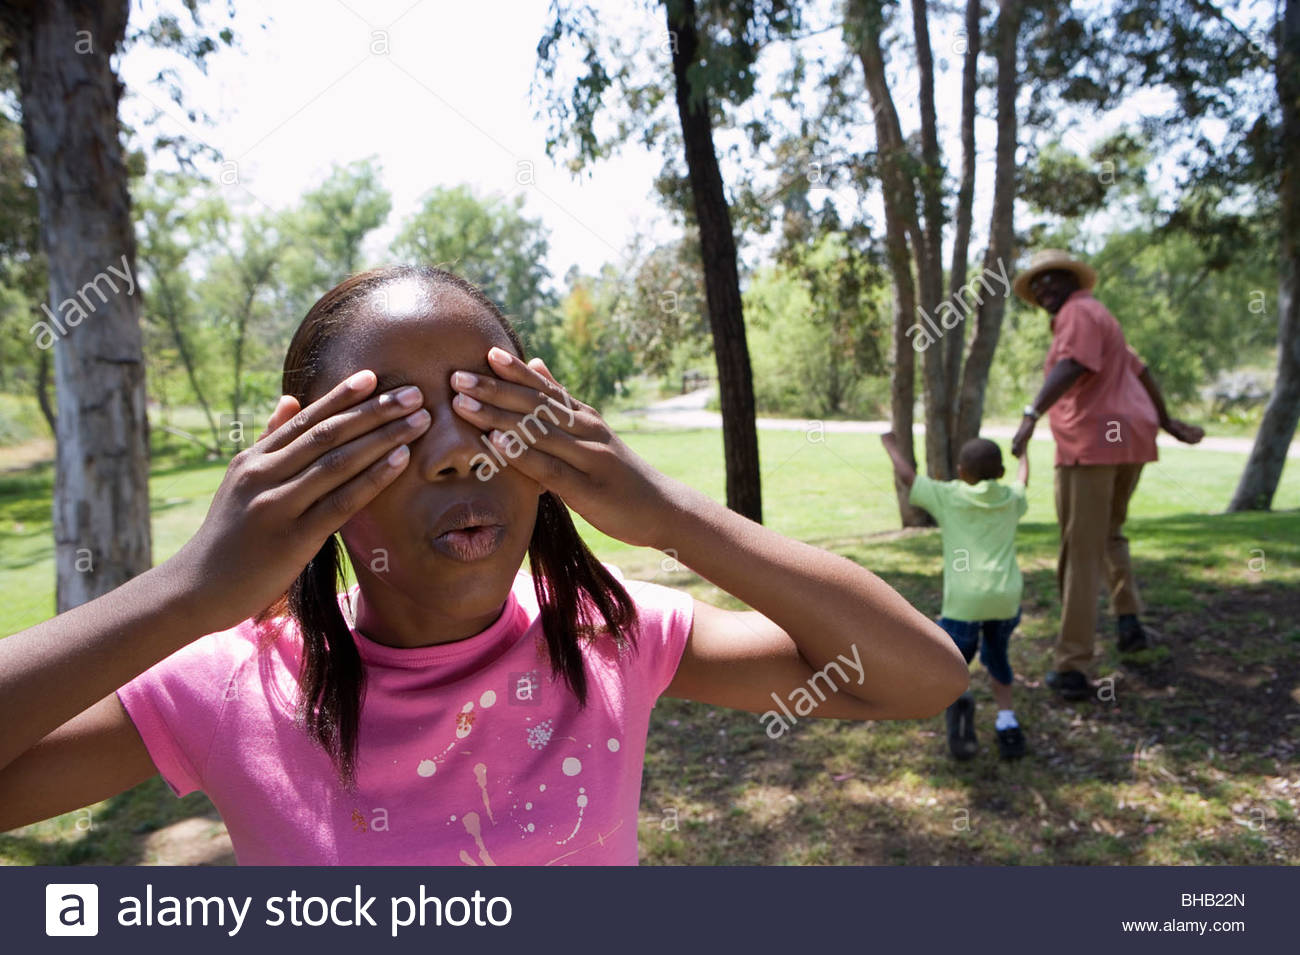 Senior man playing hide and seek with grandchildren (6-10) in park, girl covering eyes in foreground - Stock Image